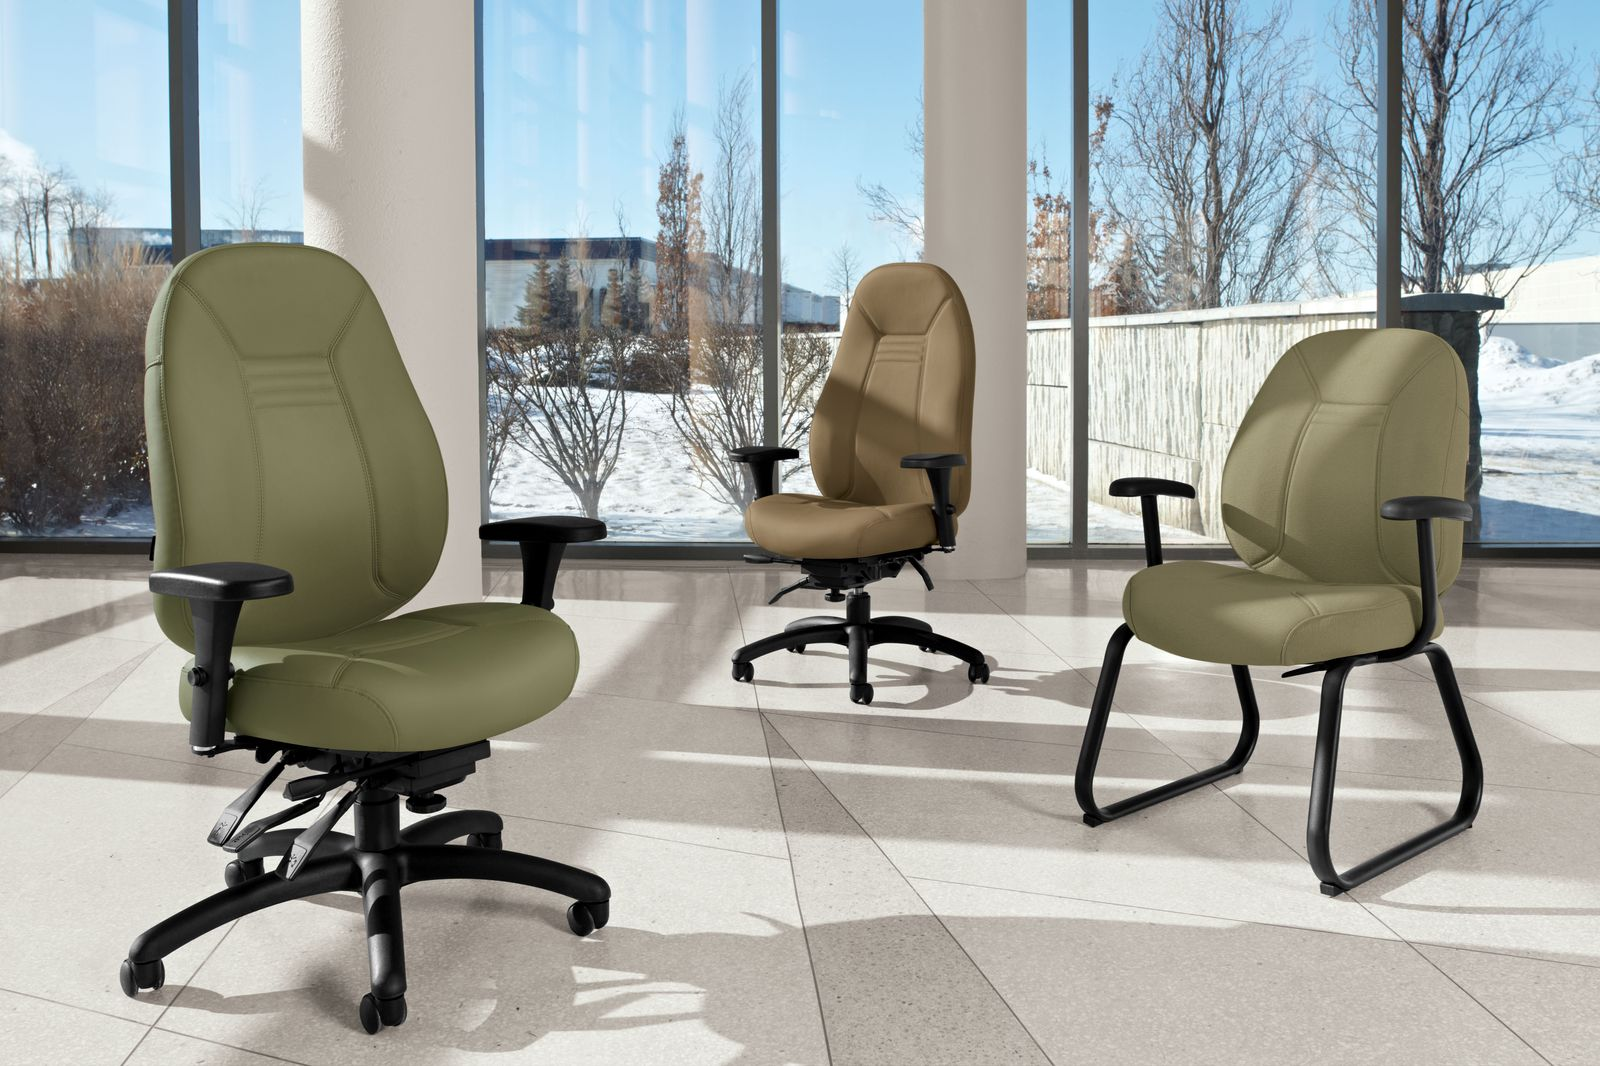 Studio shot of three Obusforme Comfort arranged in a large office space.